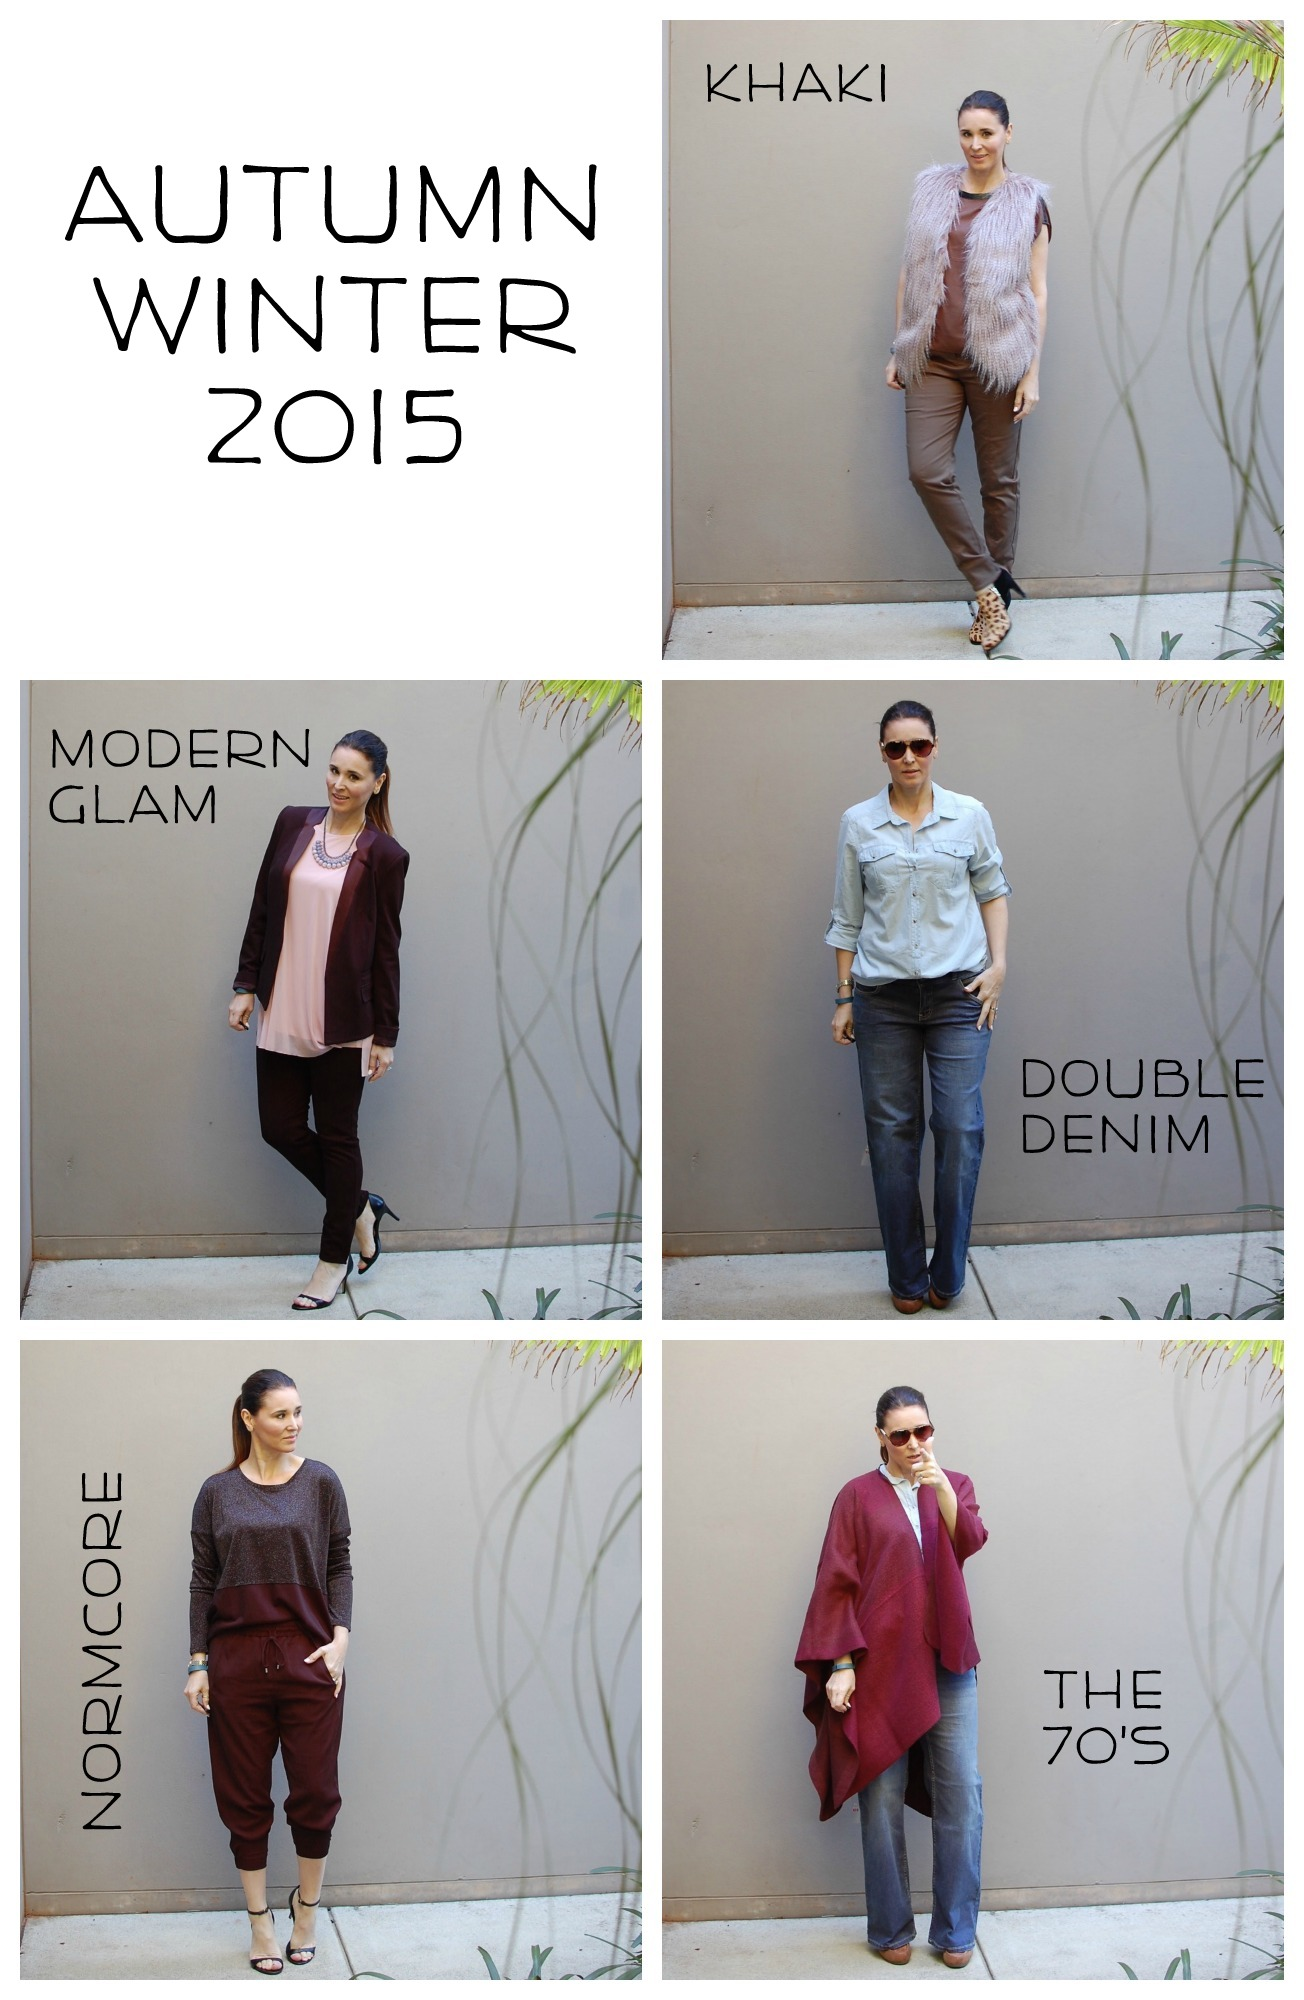 Autumn Winter Looks for 2015